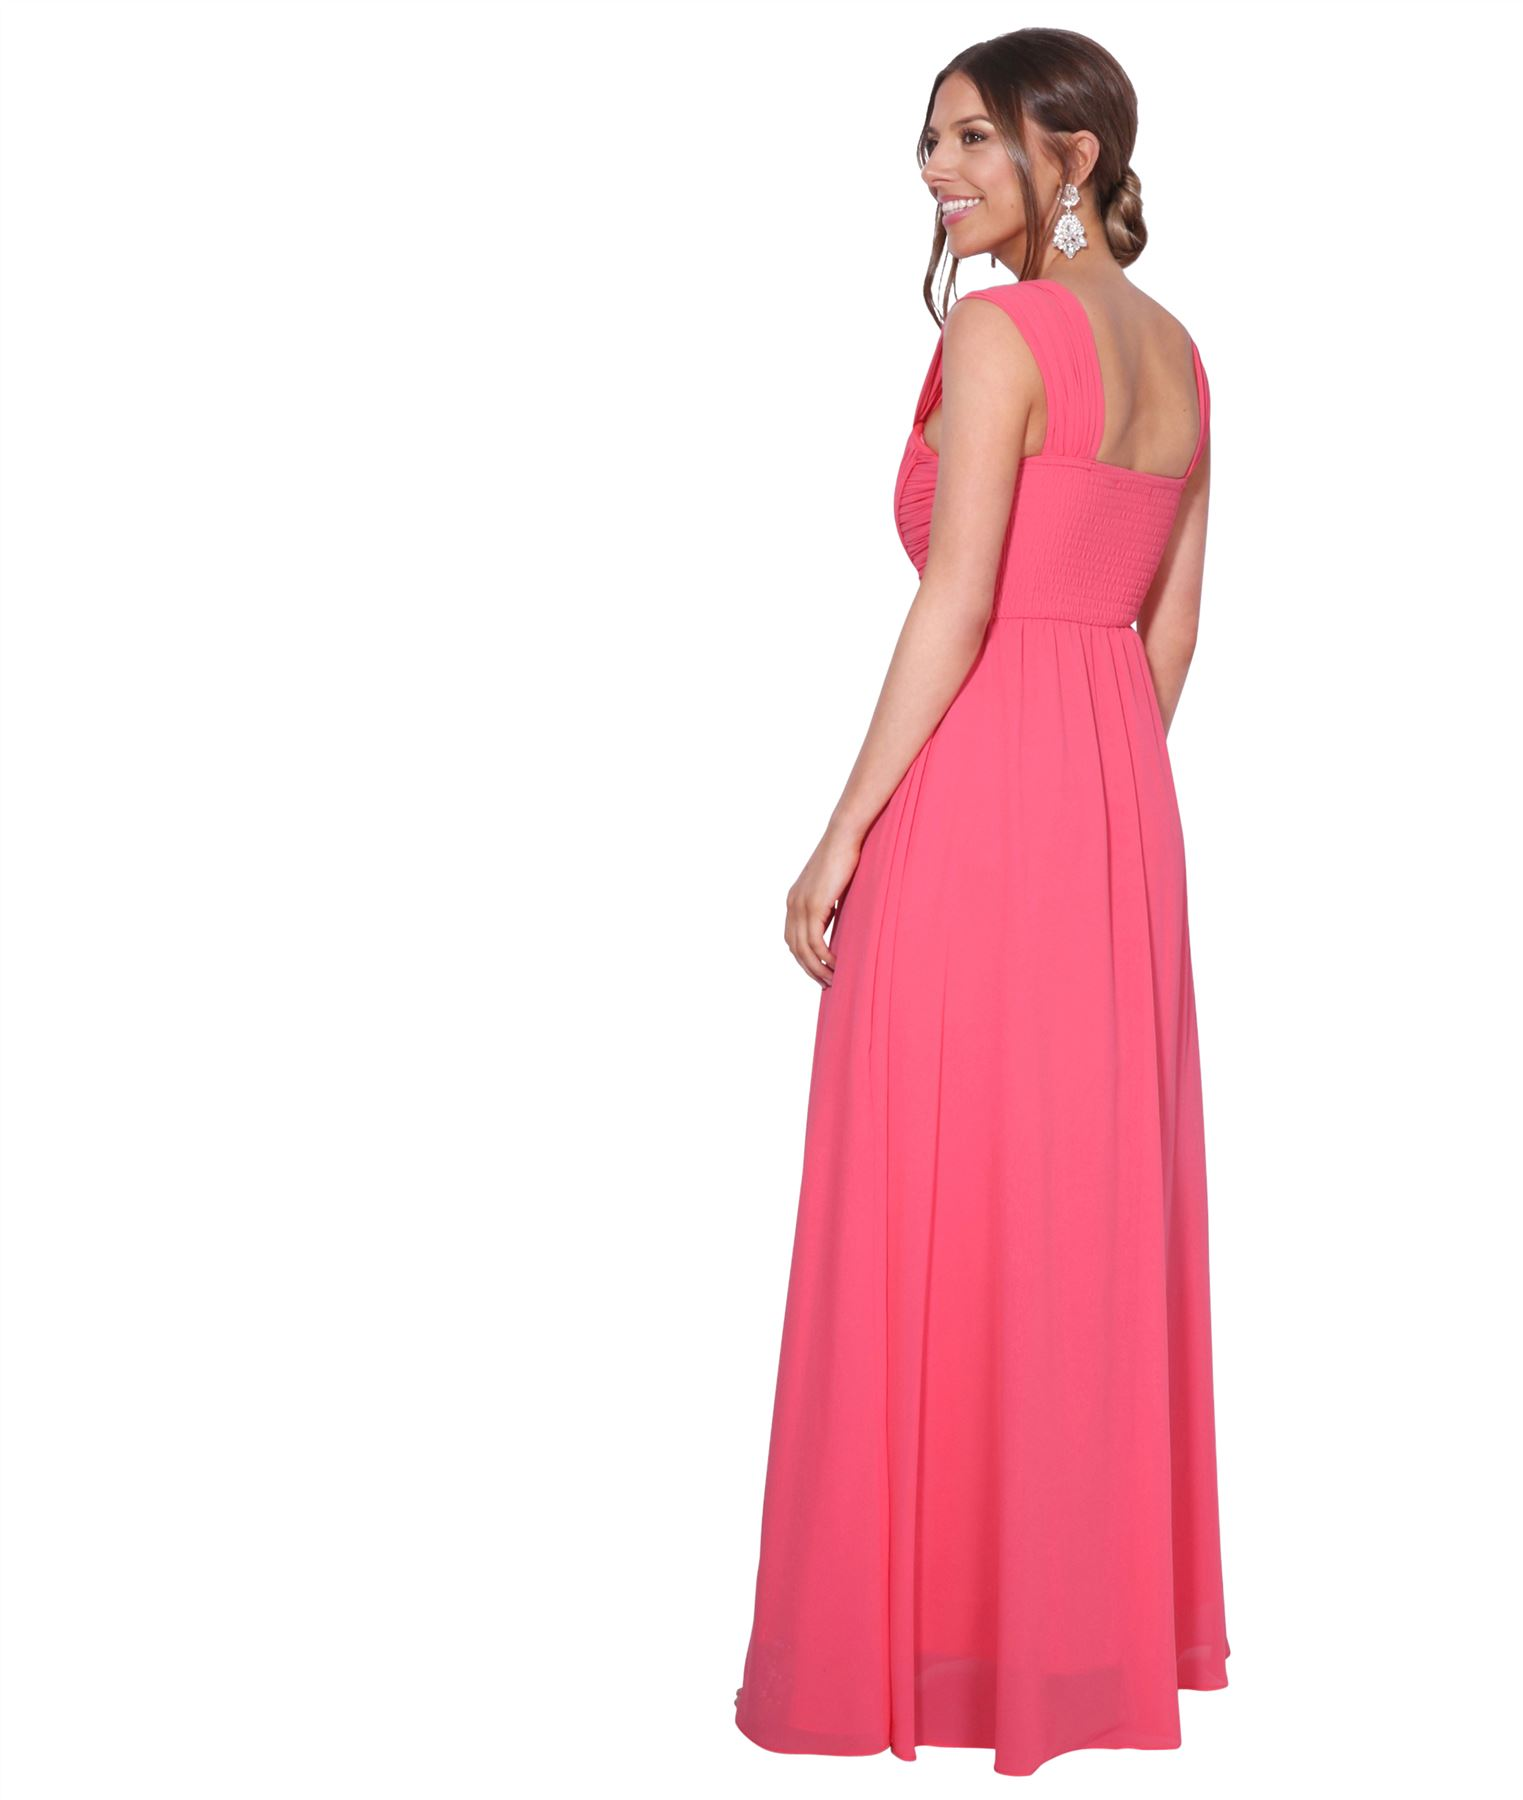 Womens-Formal-Evening-Wedding-Maxi-Prom-Dress-Long-On-Off-Shoulder-Ball-Gown thumbnail 17